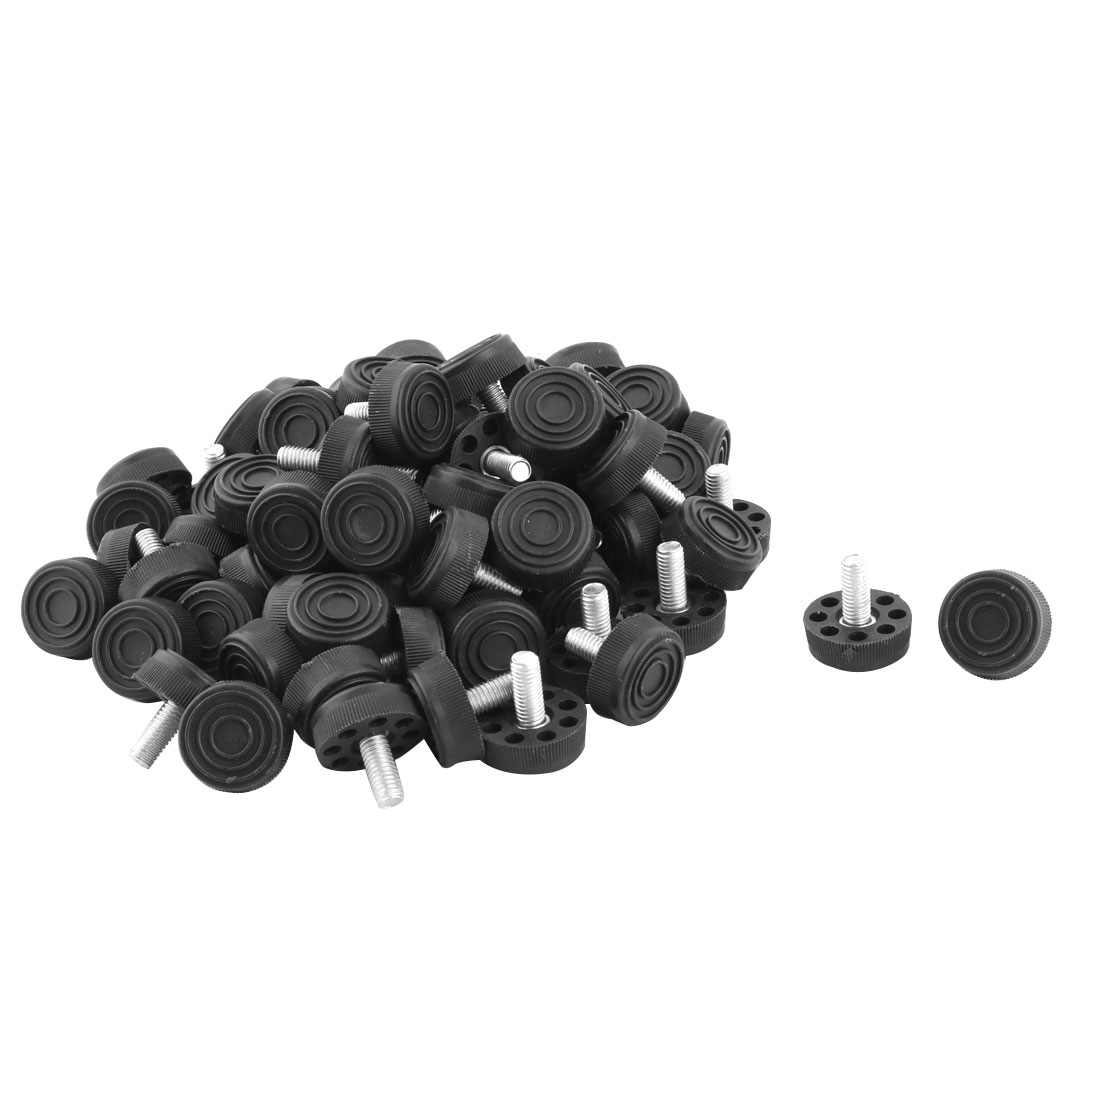 Office Plastic Adjustable Non-slip Furniture Leg Leveling Foot Black 80 Pcs